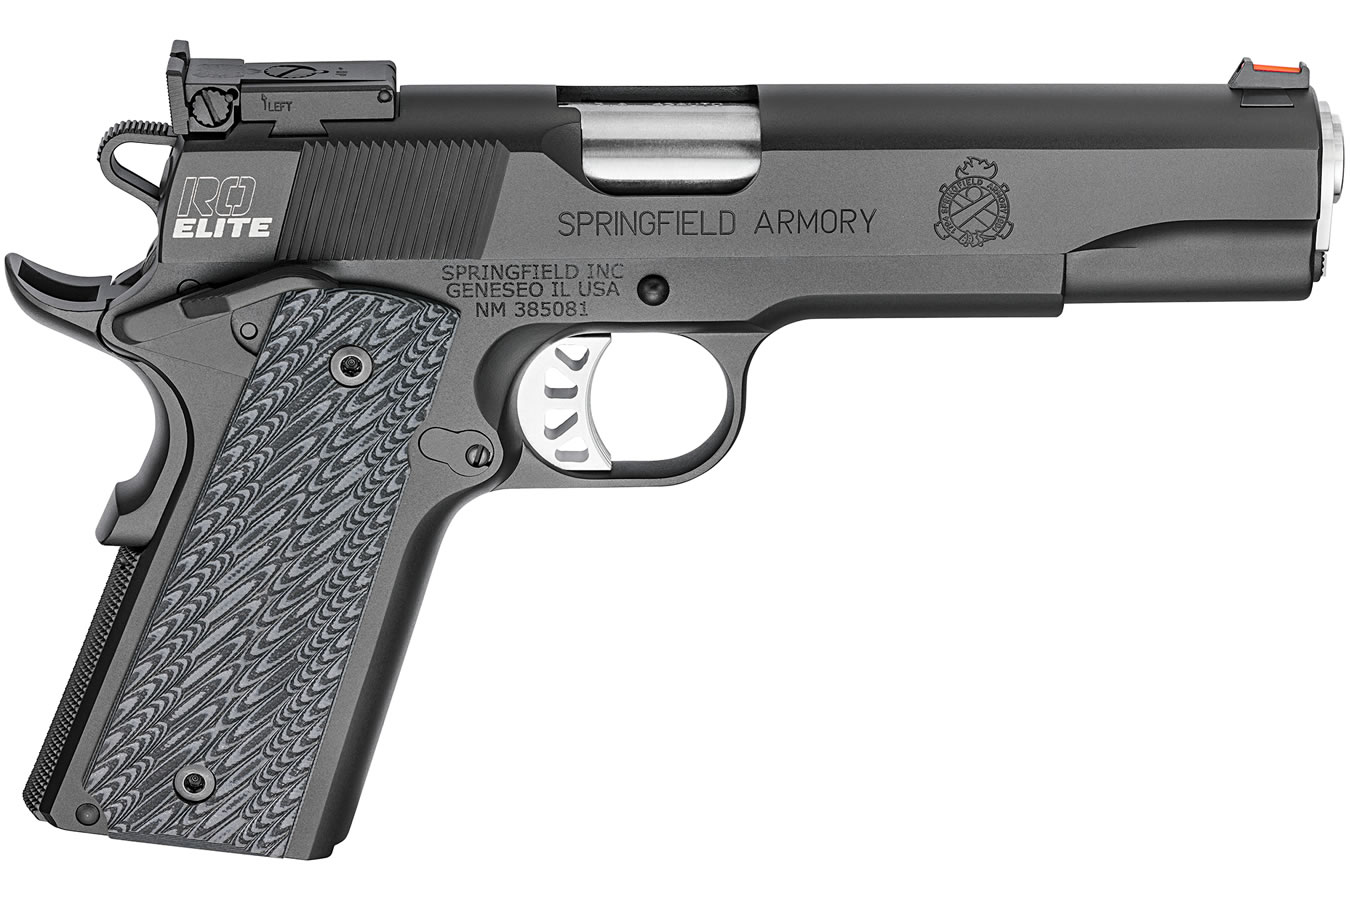 Springfield 1911 Range Officer Elite Target 45 ACP with 4 Magazines ...